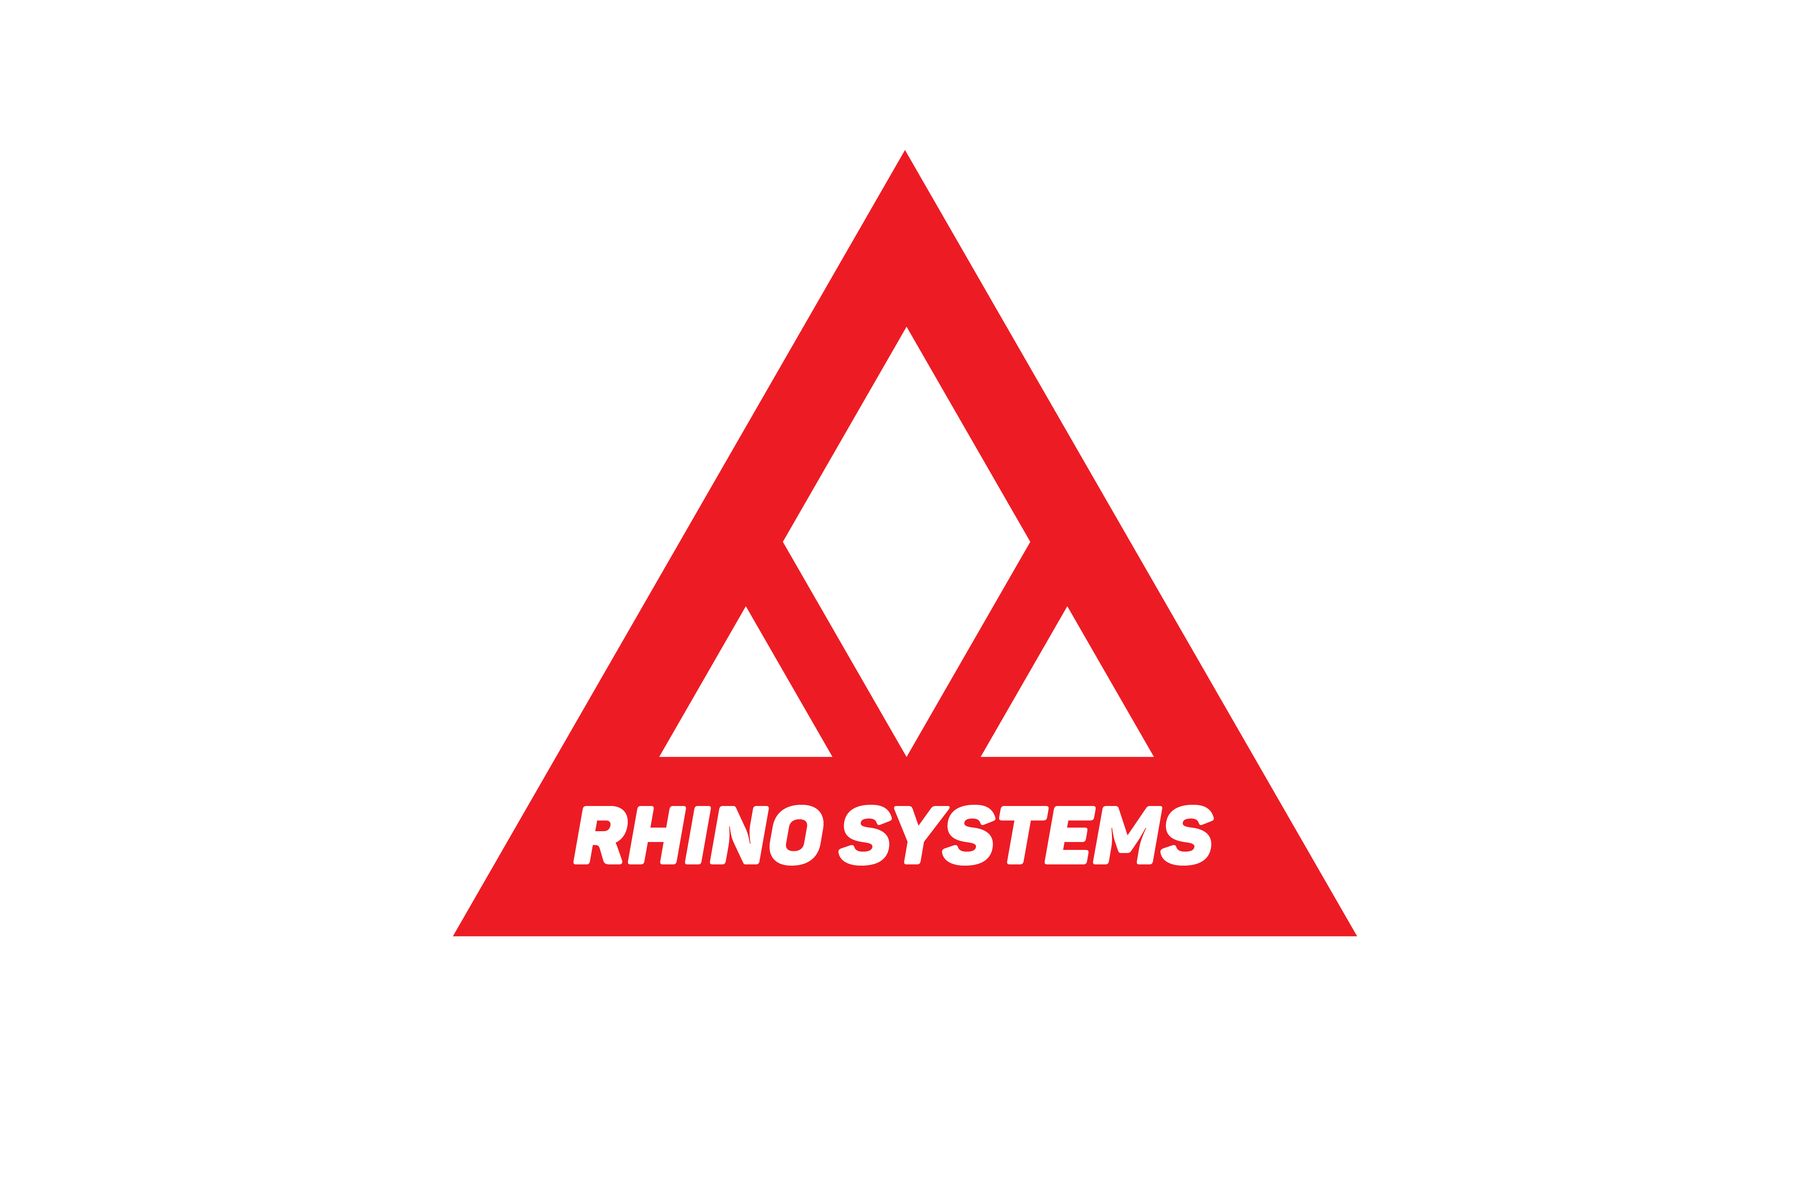 The logo for a fictional South African defence company. The rhinoceros is a strong land mammal, and its front face was the inspiration for the triangle shape (itself a strong geometric shape) with the the rhombus representing the horn.